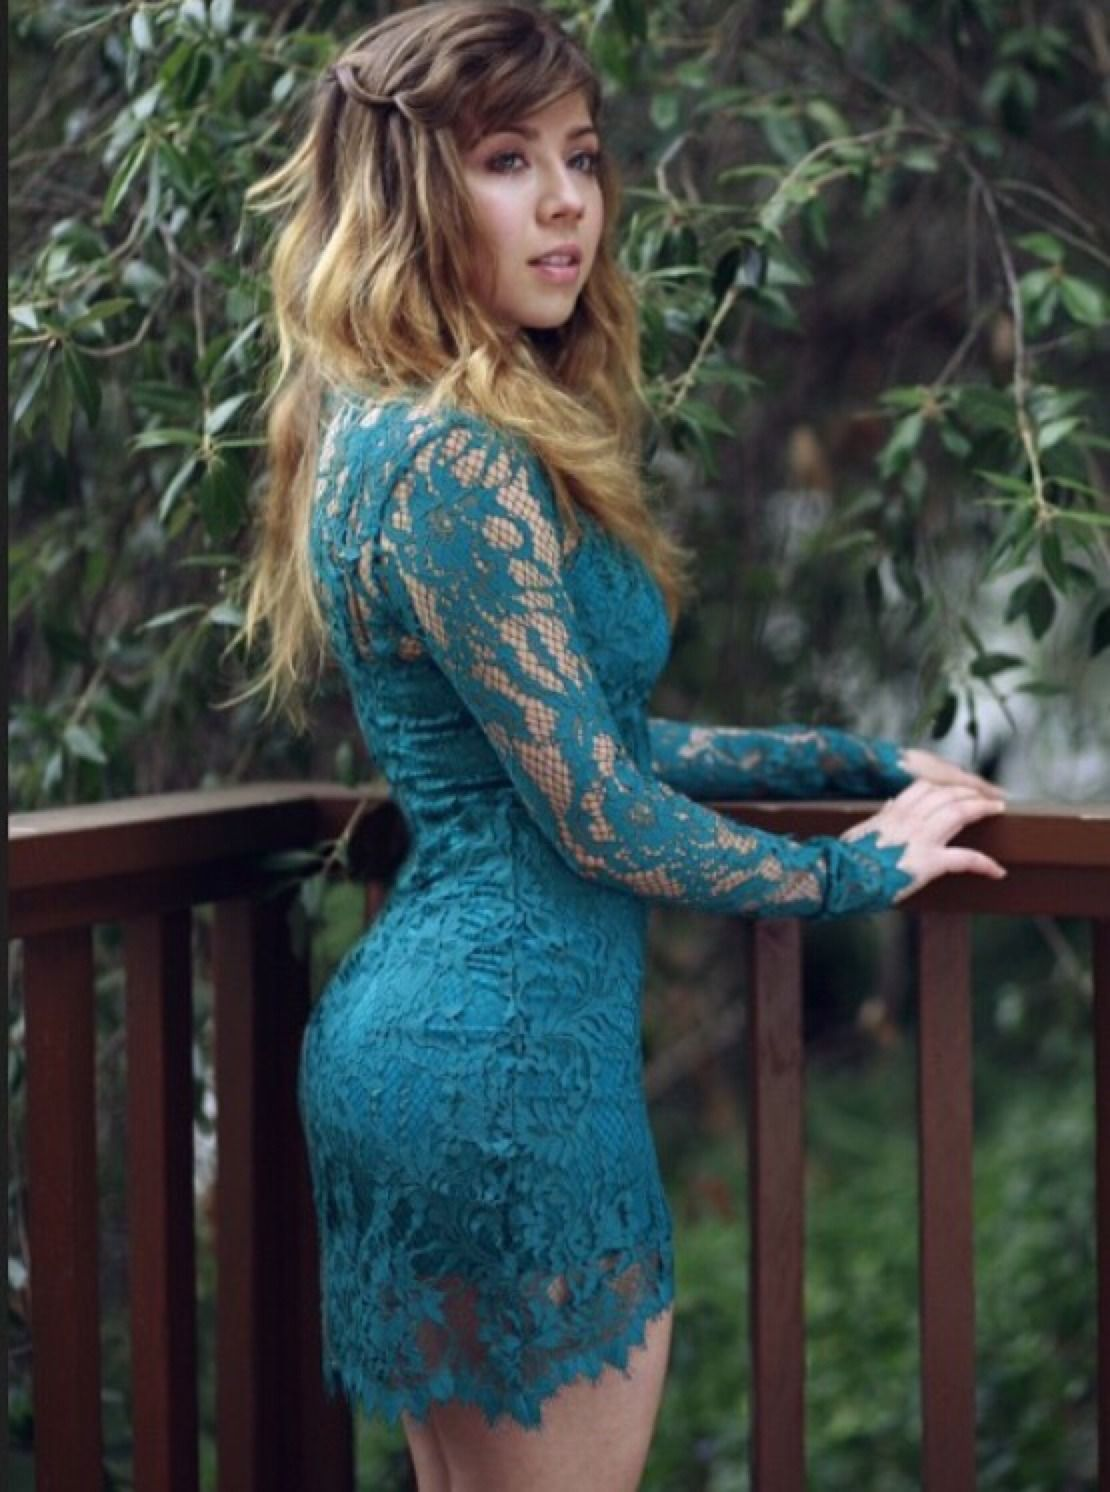 Jennette Mccurdy Getting Fucked jennette mccurdy in 2019 | jennette mccurdy, beautiful